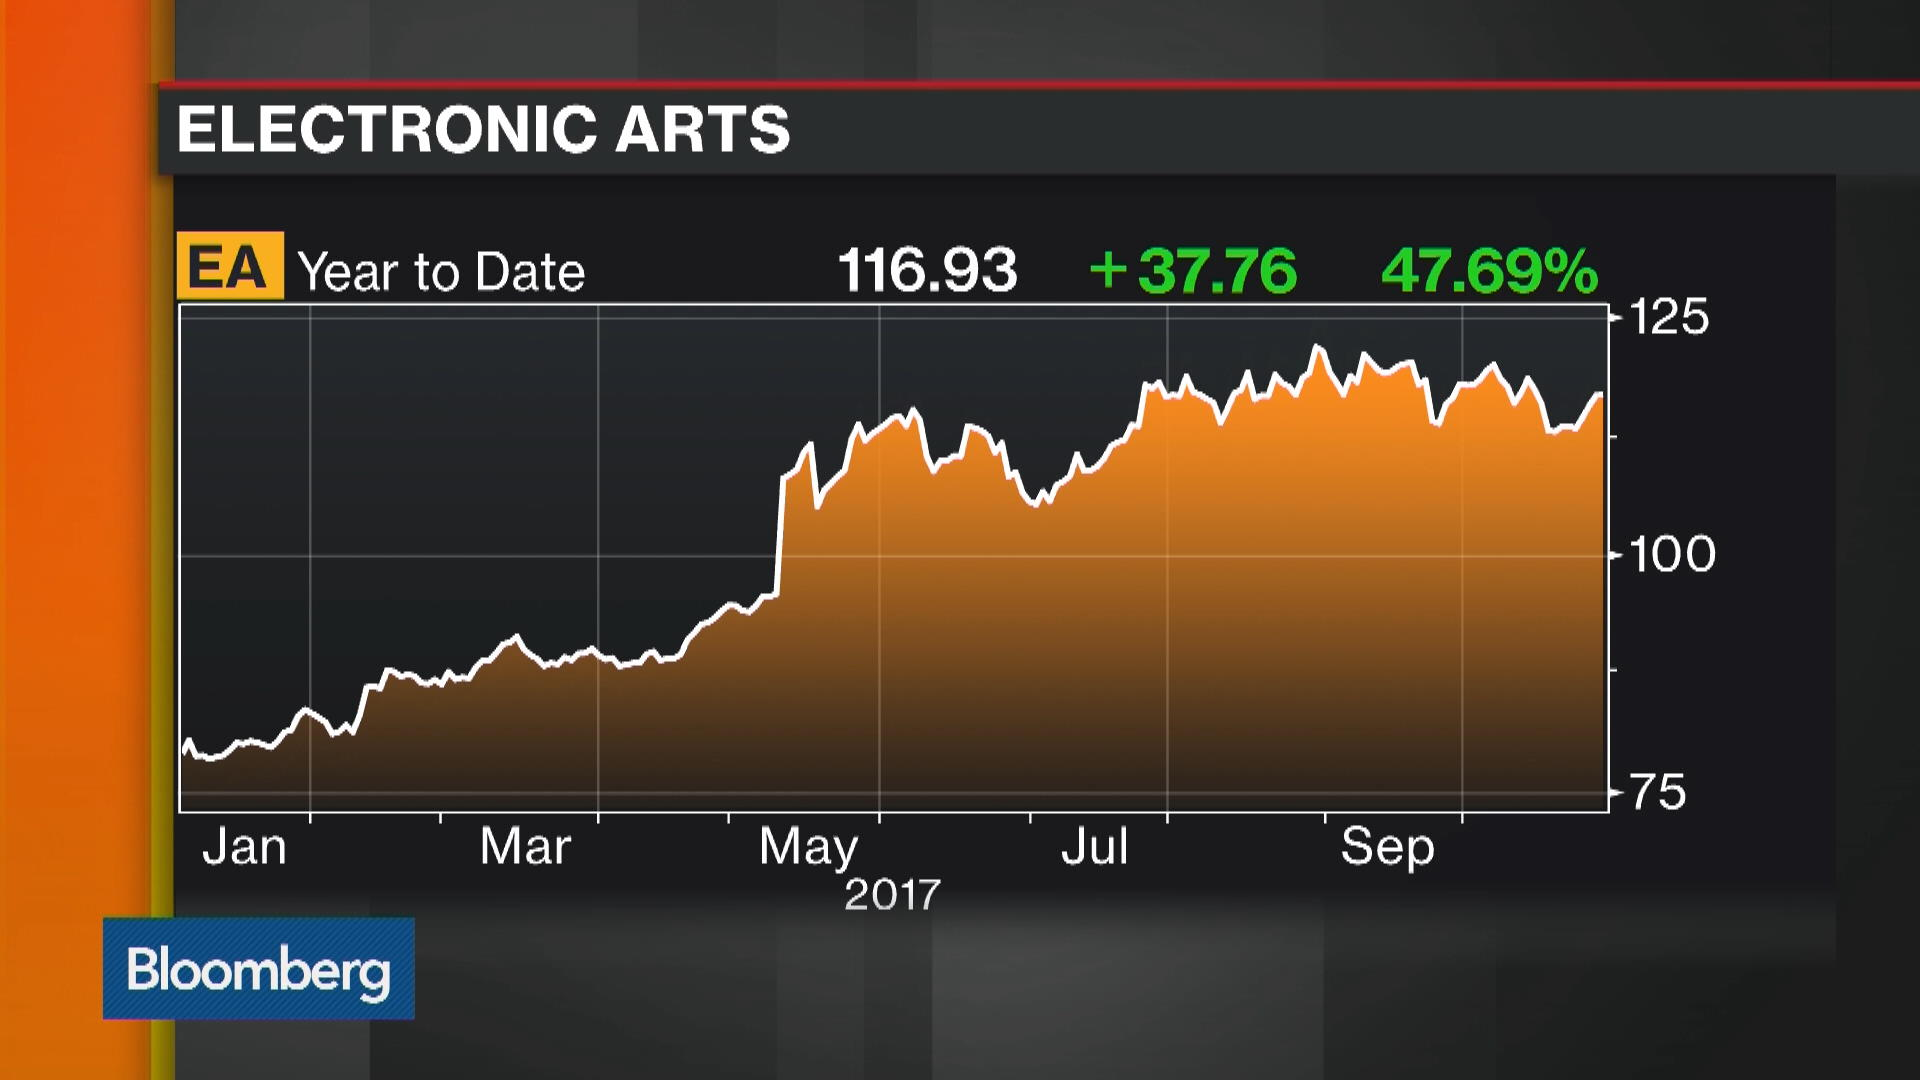 Eanasdaq Gs Stock Quote Electronic Arts Inc Bloomberg Markets